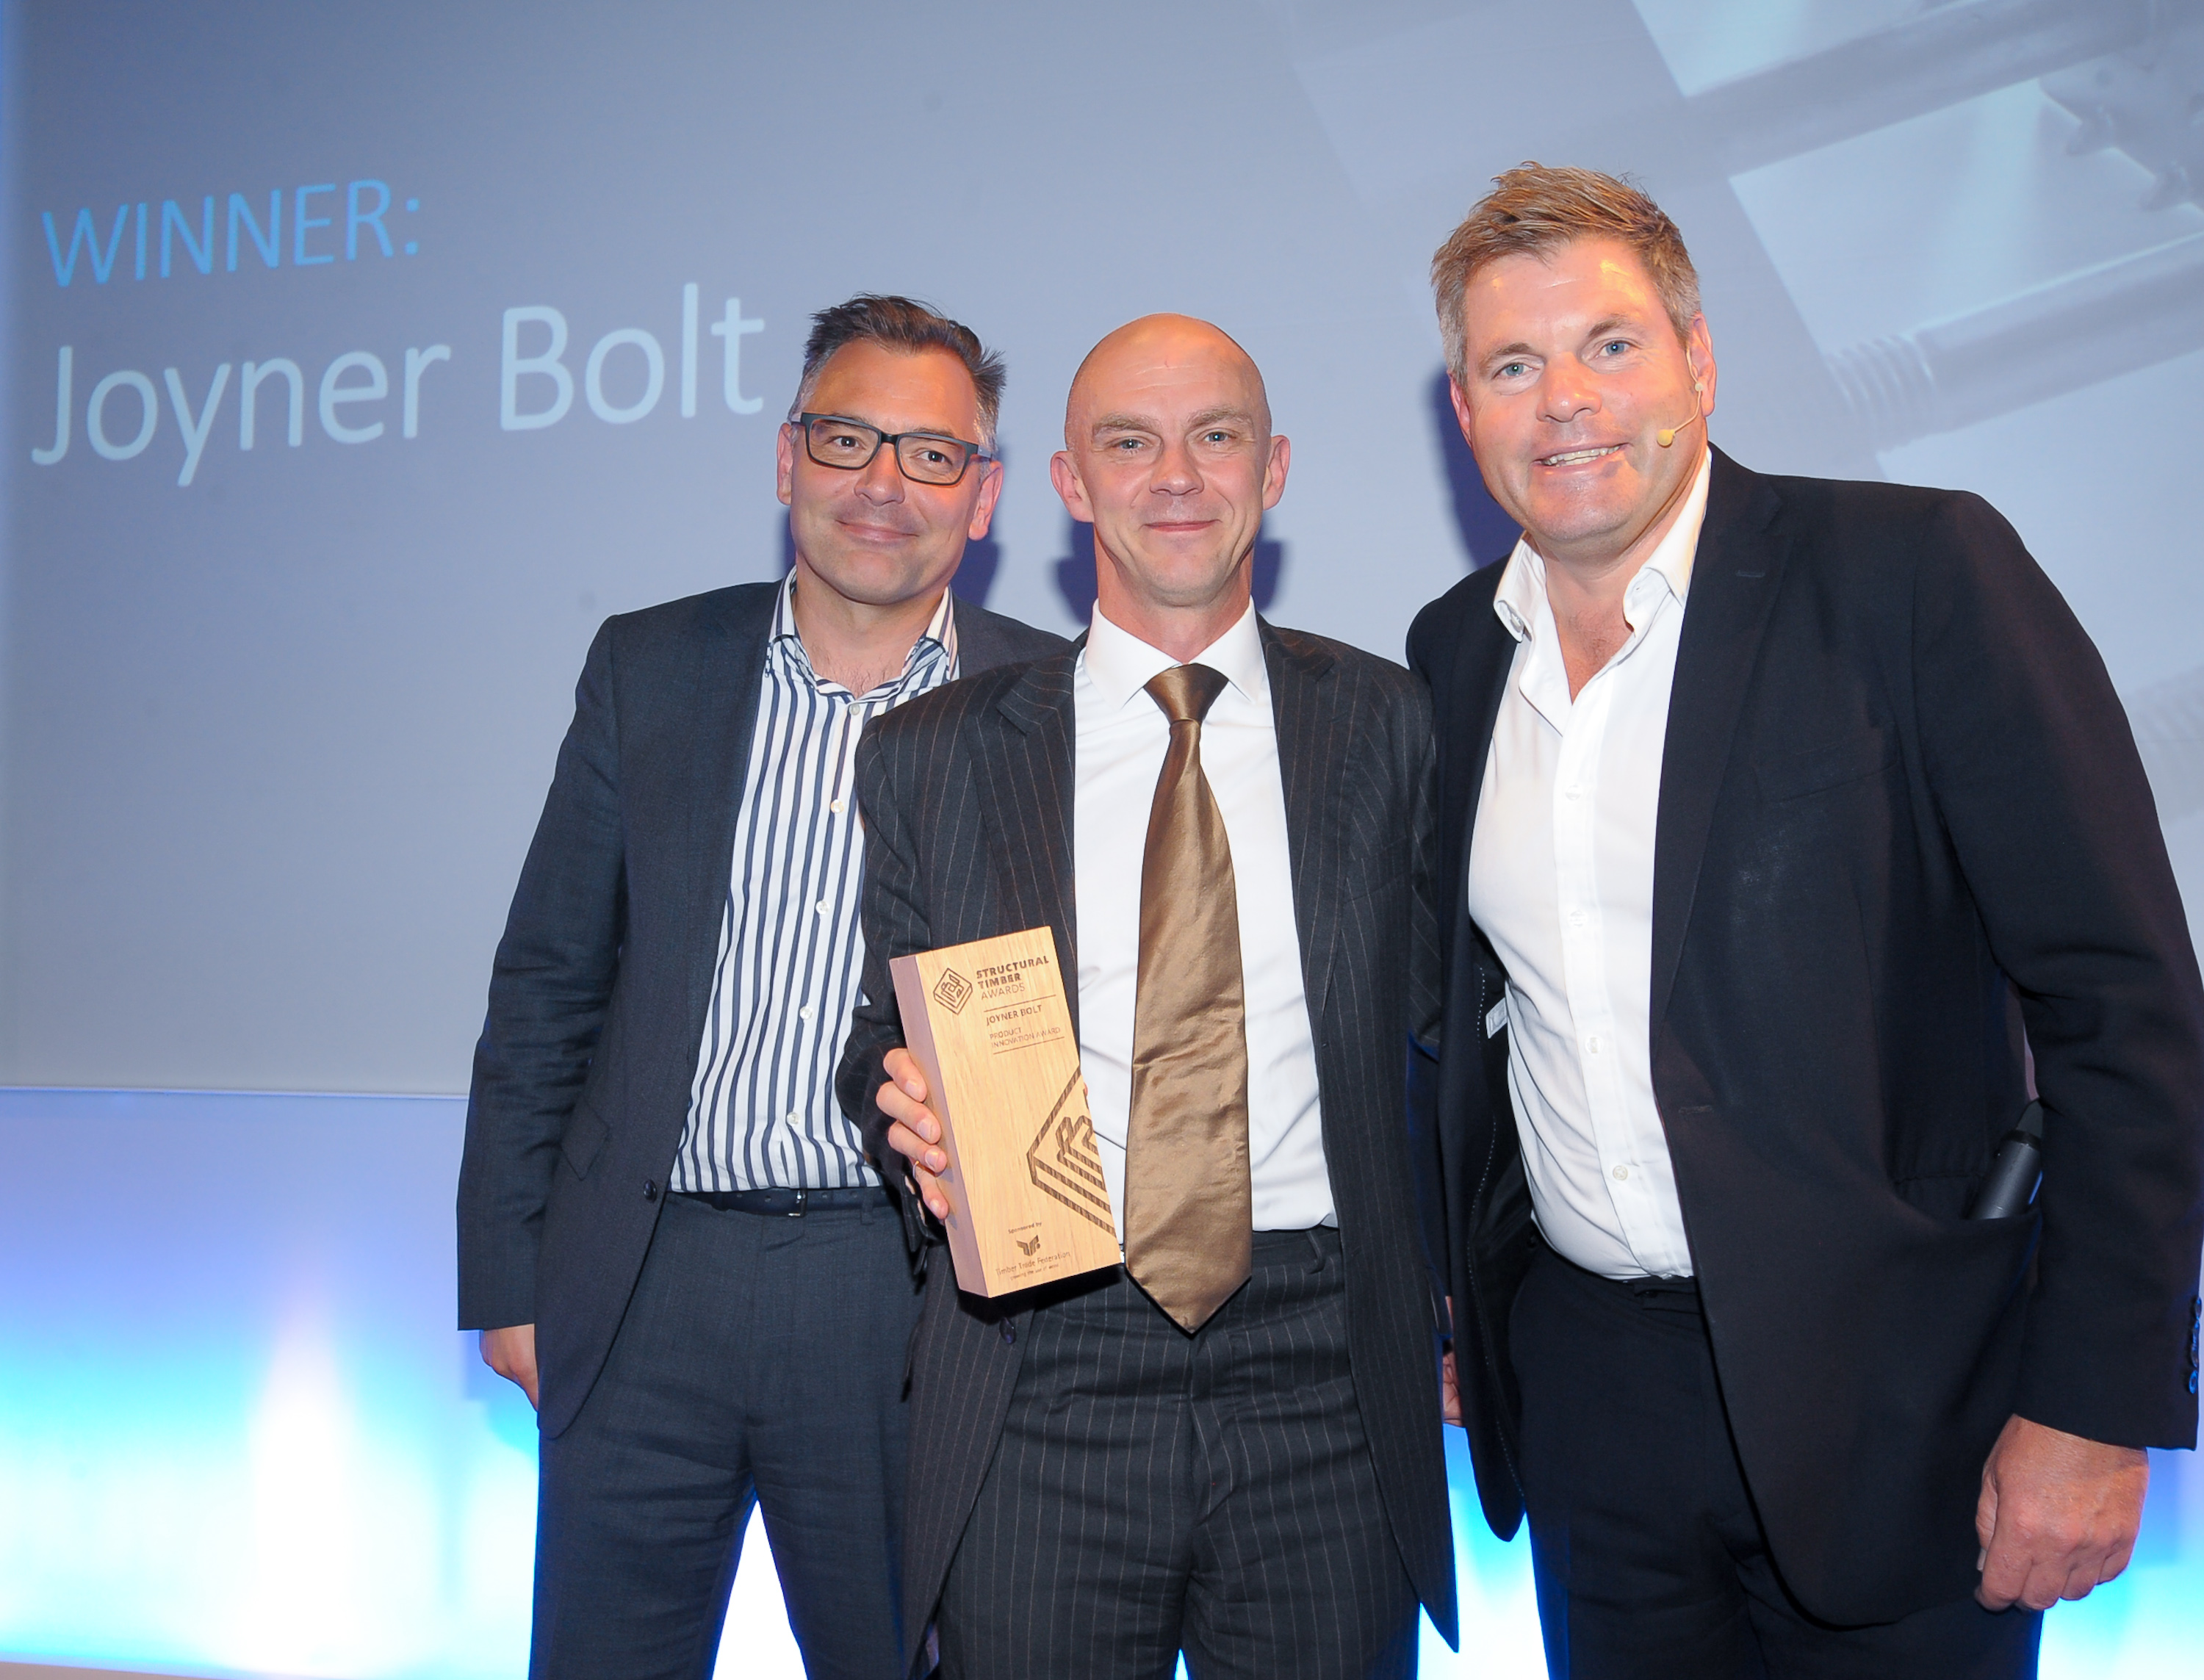 sta_awards_11.10.17___148_of_229_